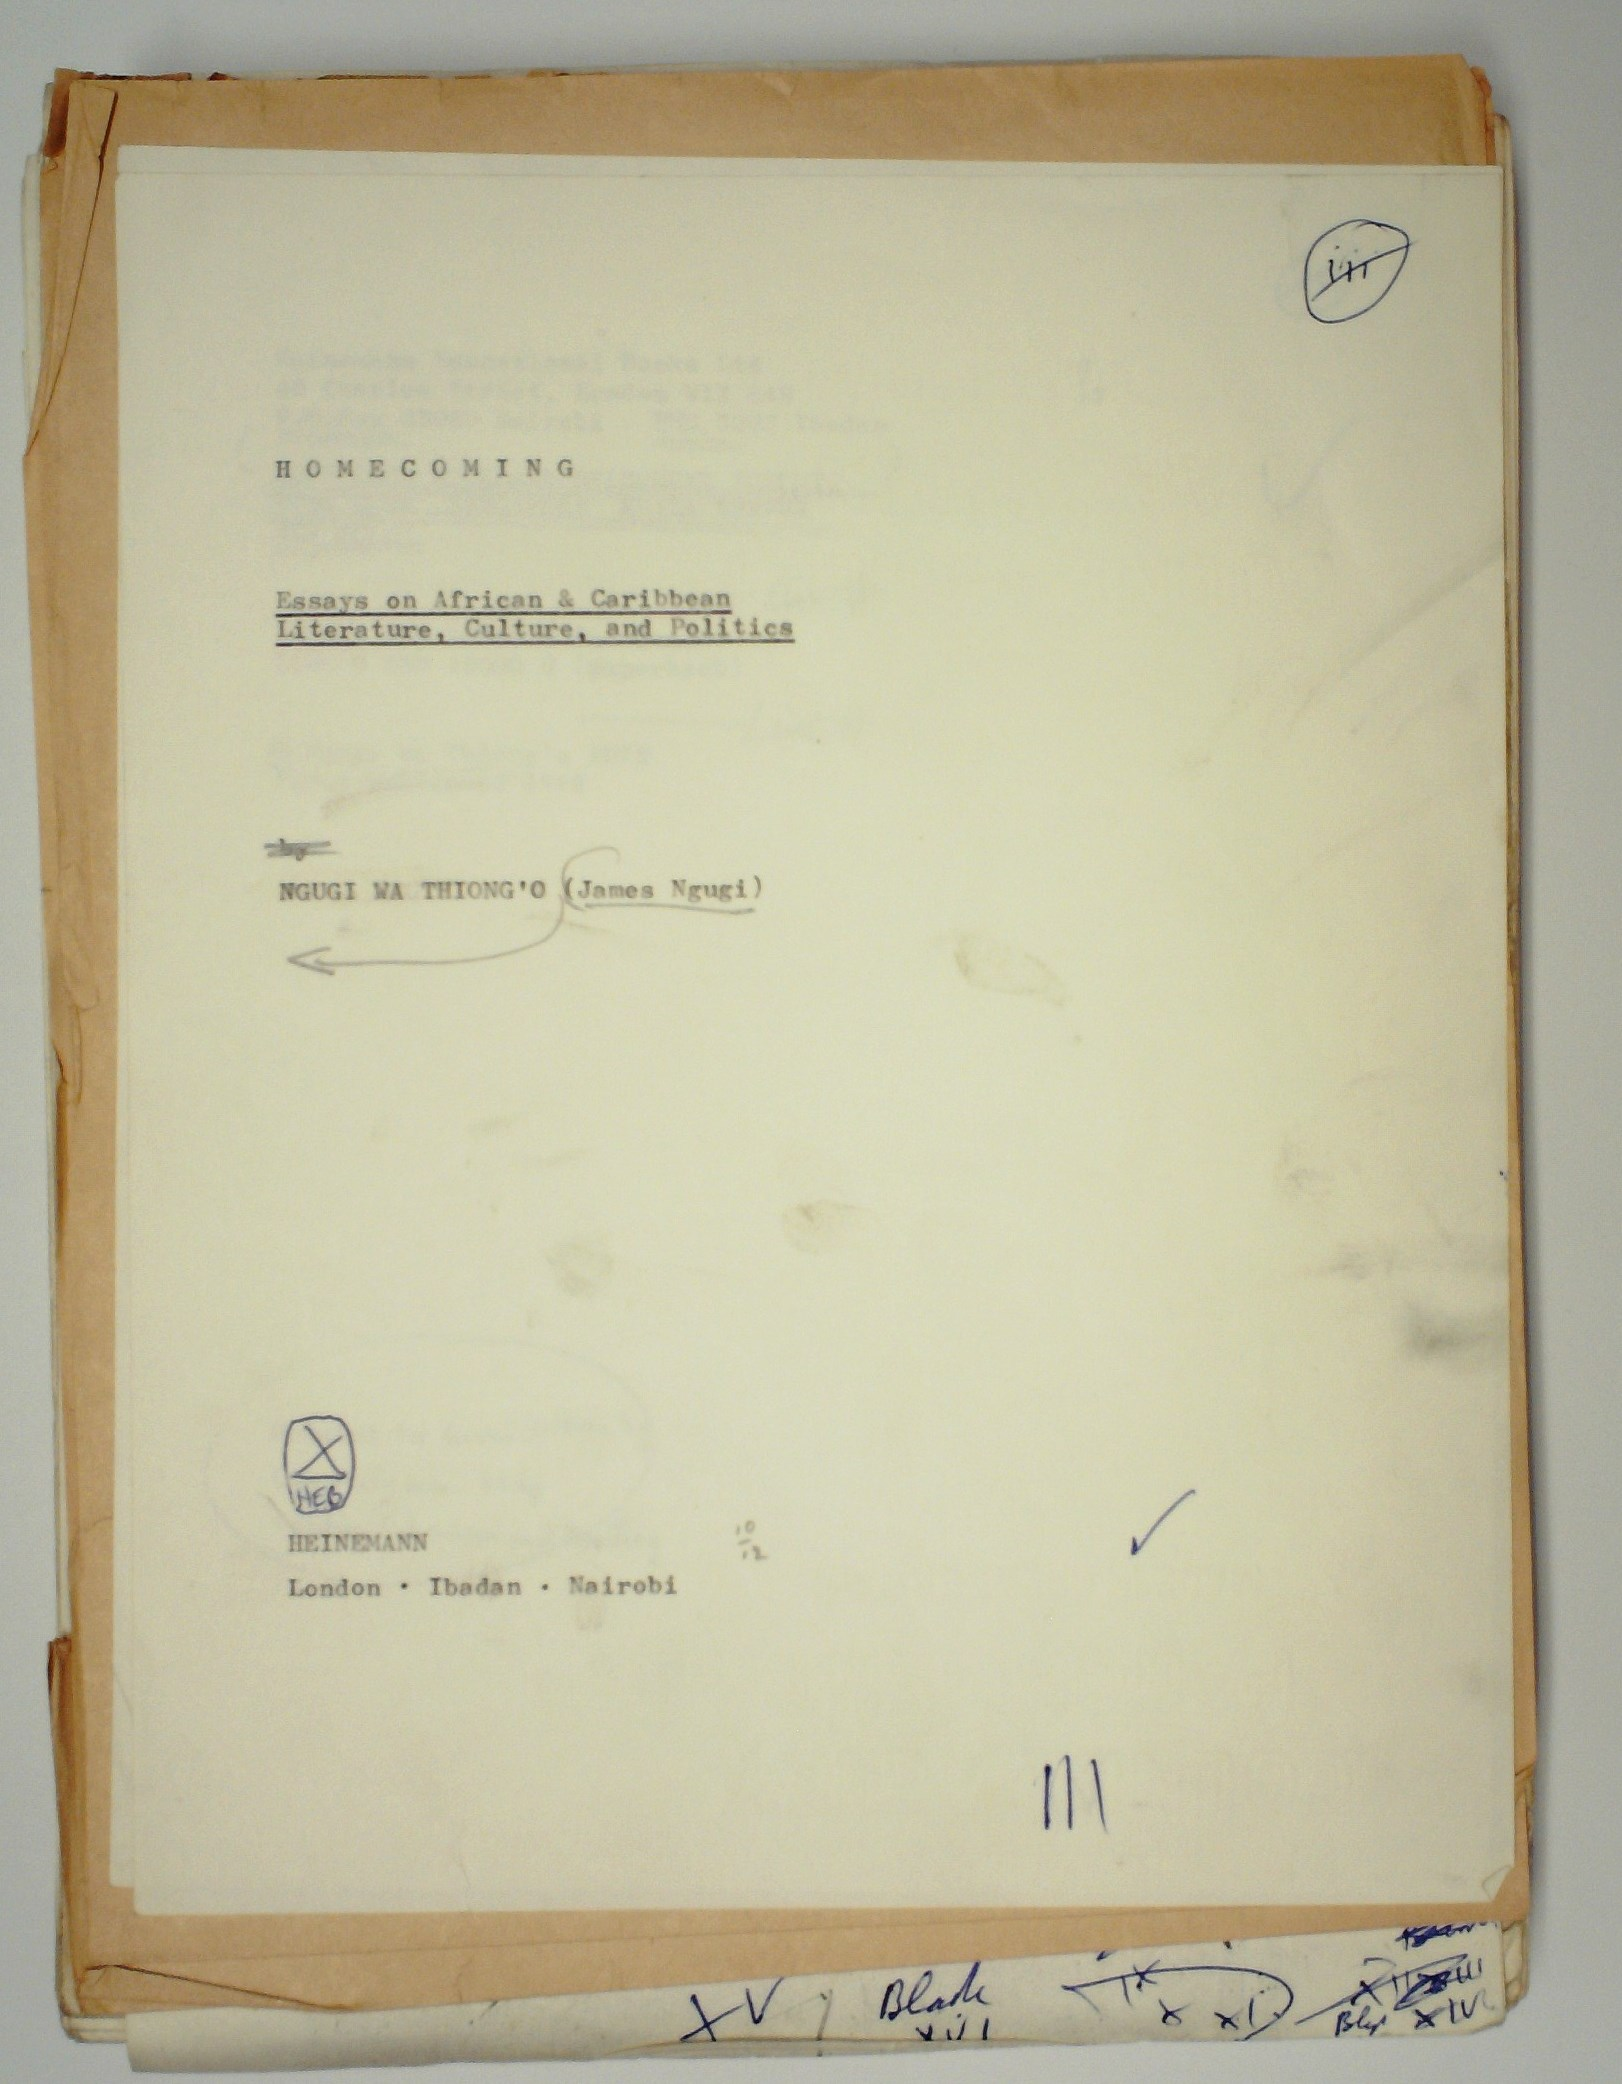 african peoples soas archives title page annotated typescript of homecoming essays on african and caribbean literature culture and politics by ng361g297 wa thiong o ms 337274